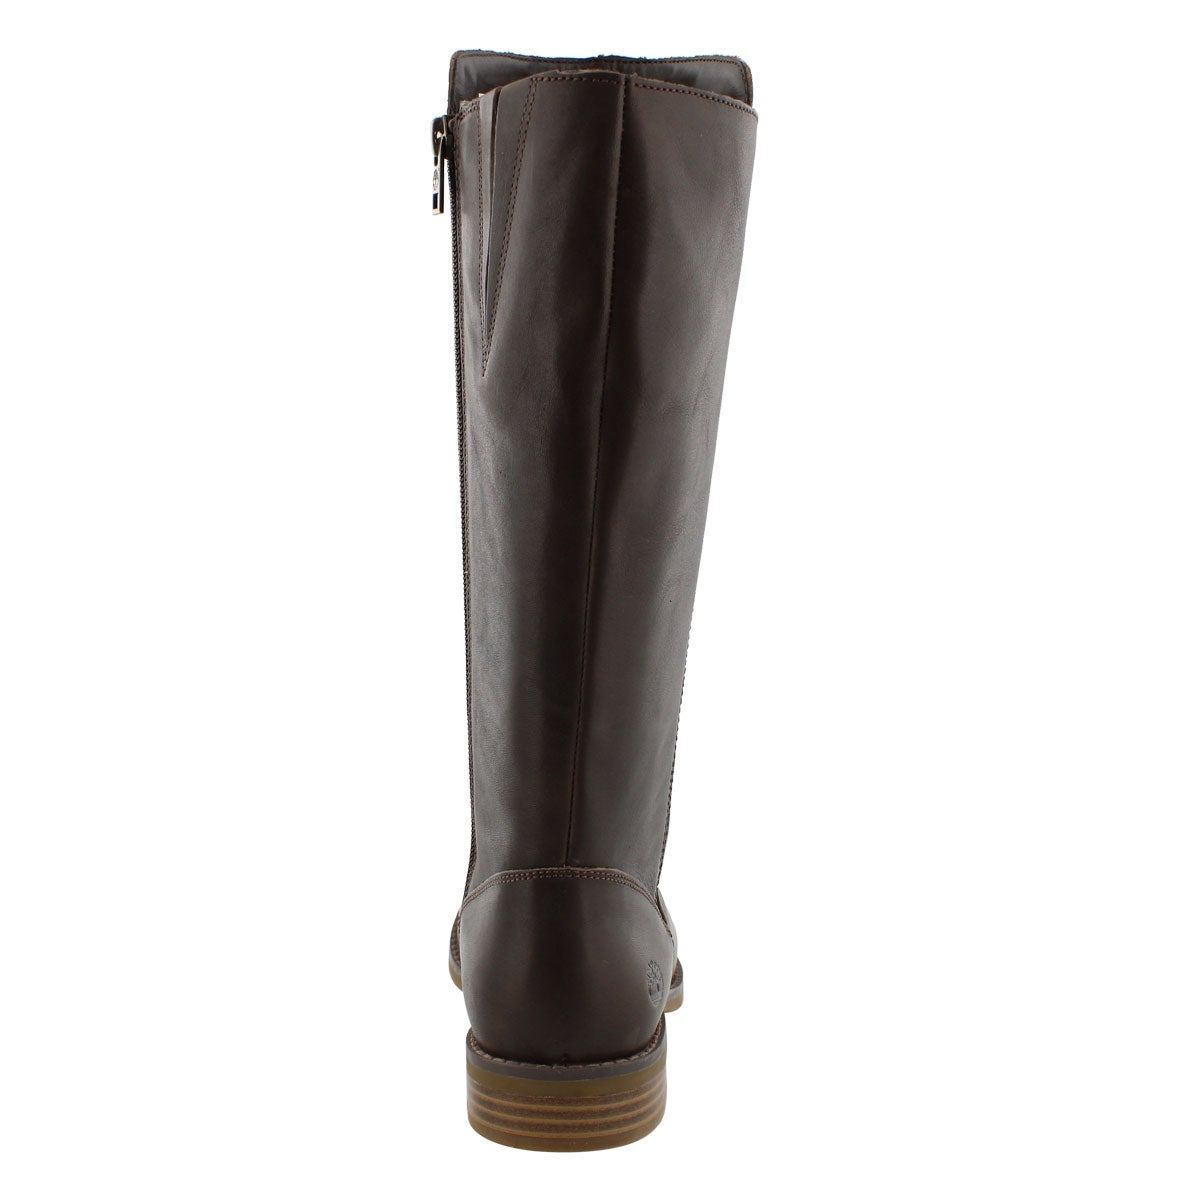 Lds Magby dk brn knee high boot